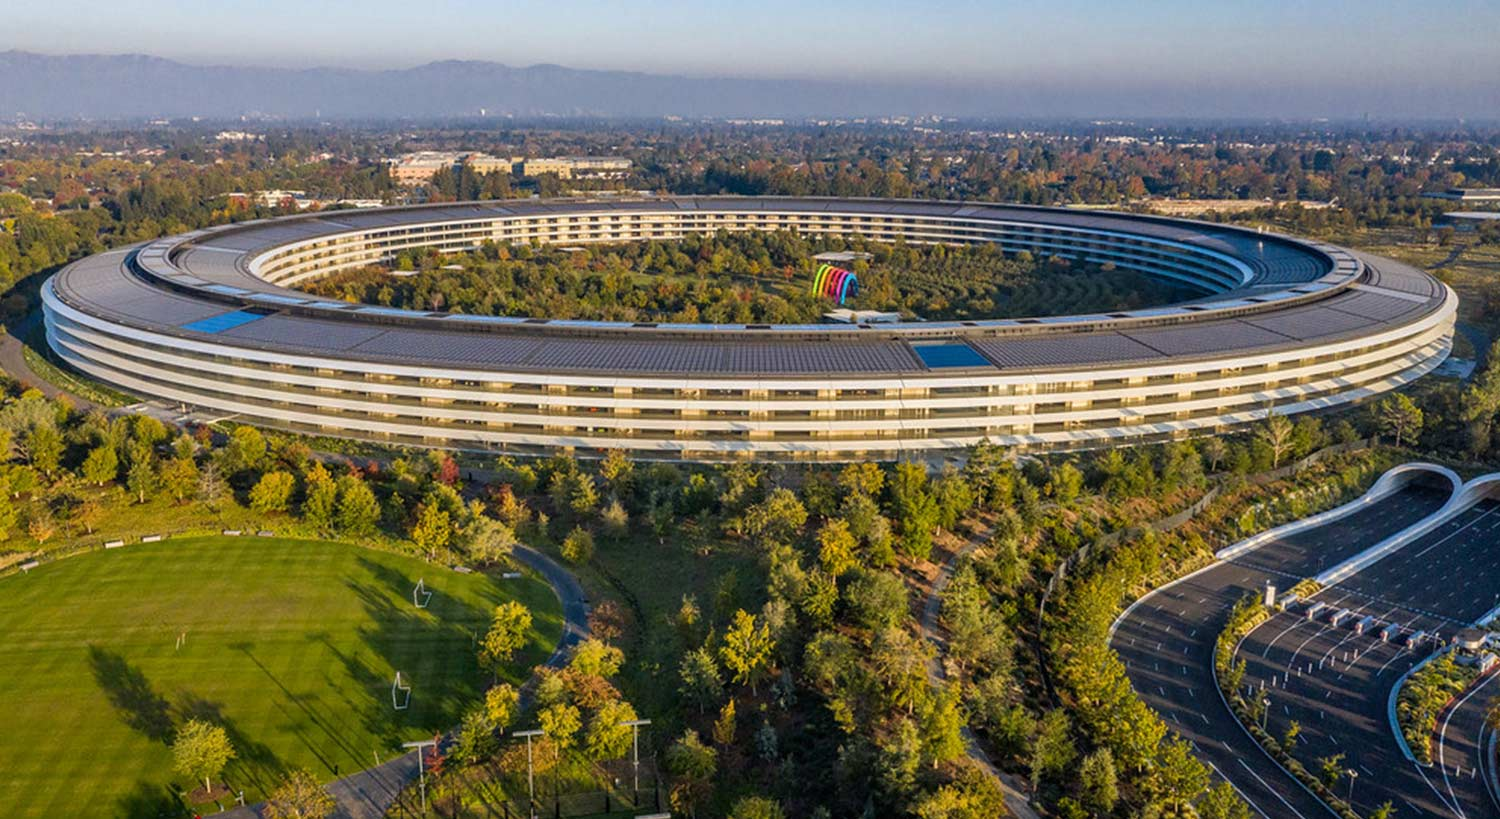 Aerial view of circular Apple Park campus